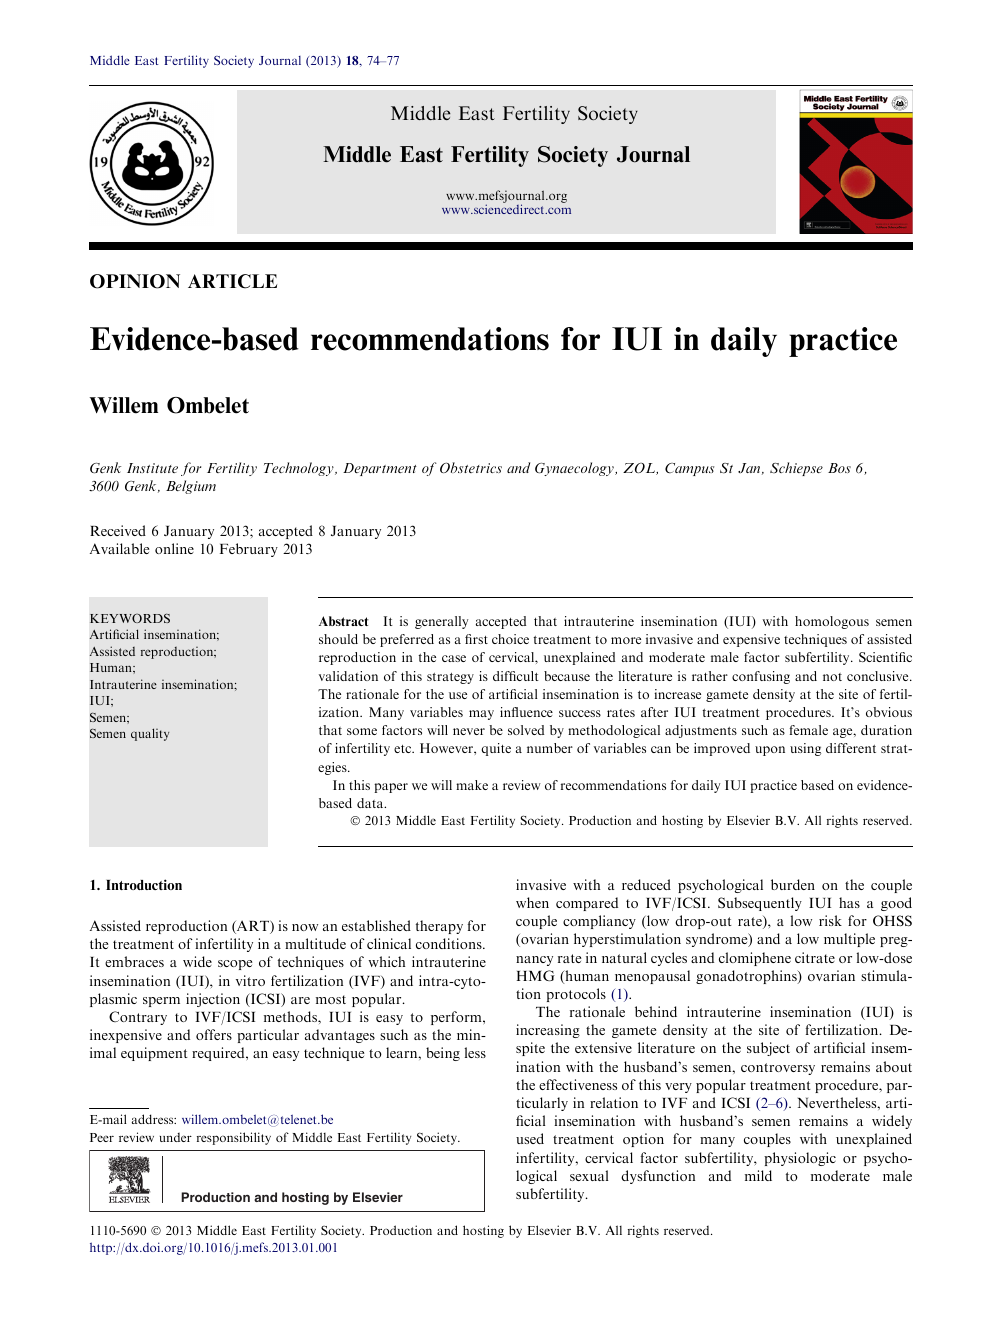 Evidence-based recommendations for IUI in daily practice